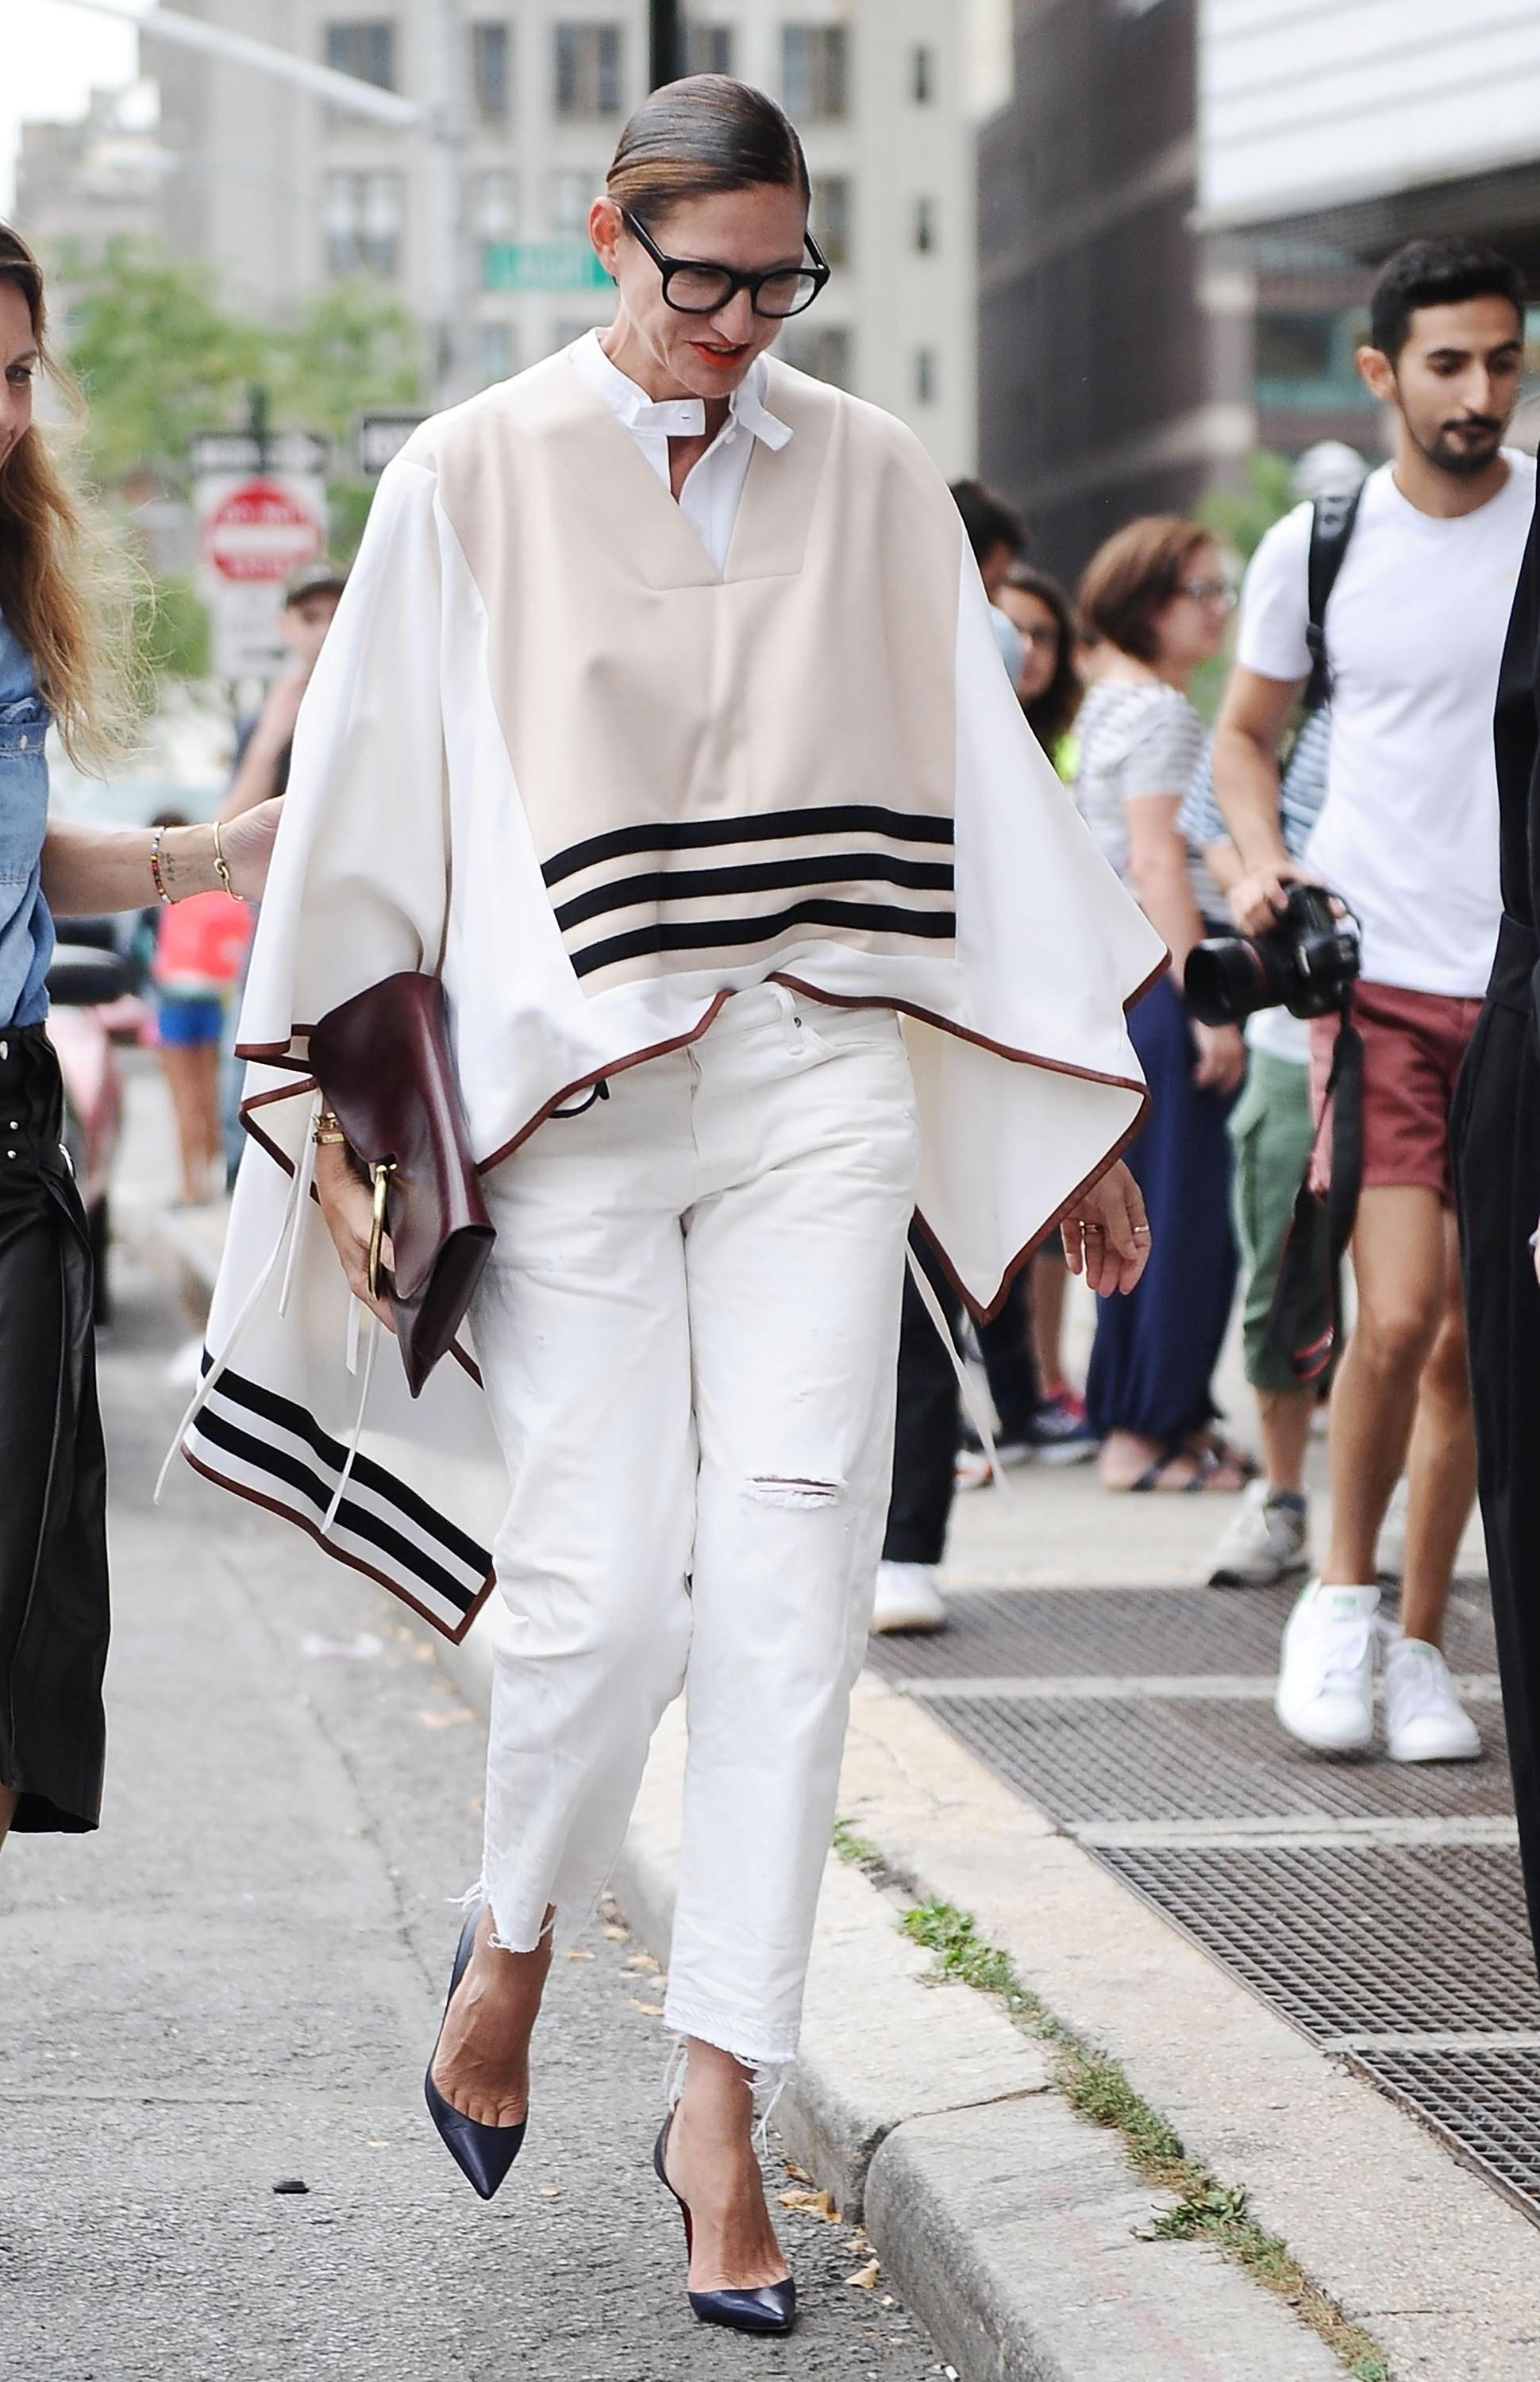 963795a42c8c 9 Things to Remember About the Jenna Lyons Era at J.Crew